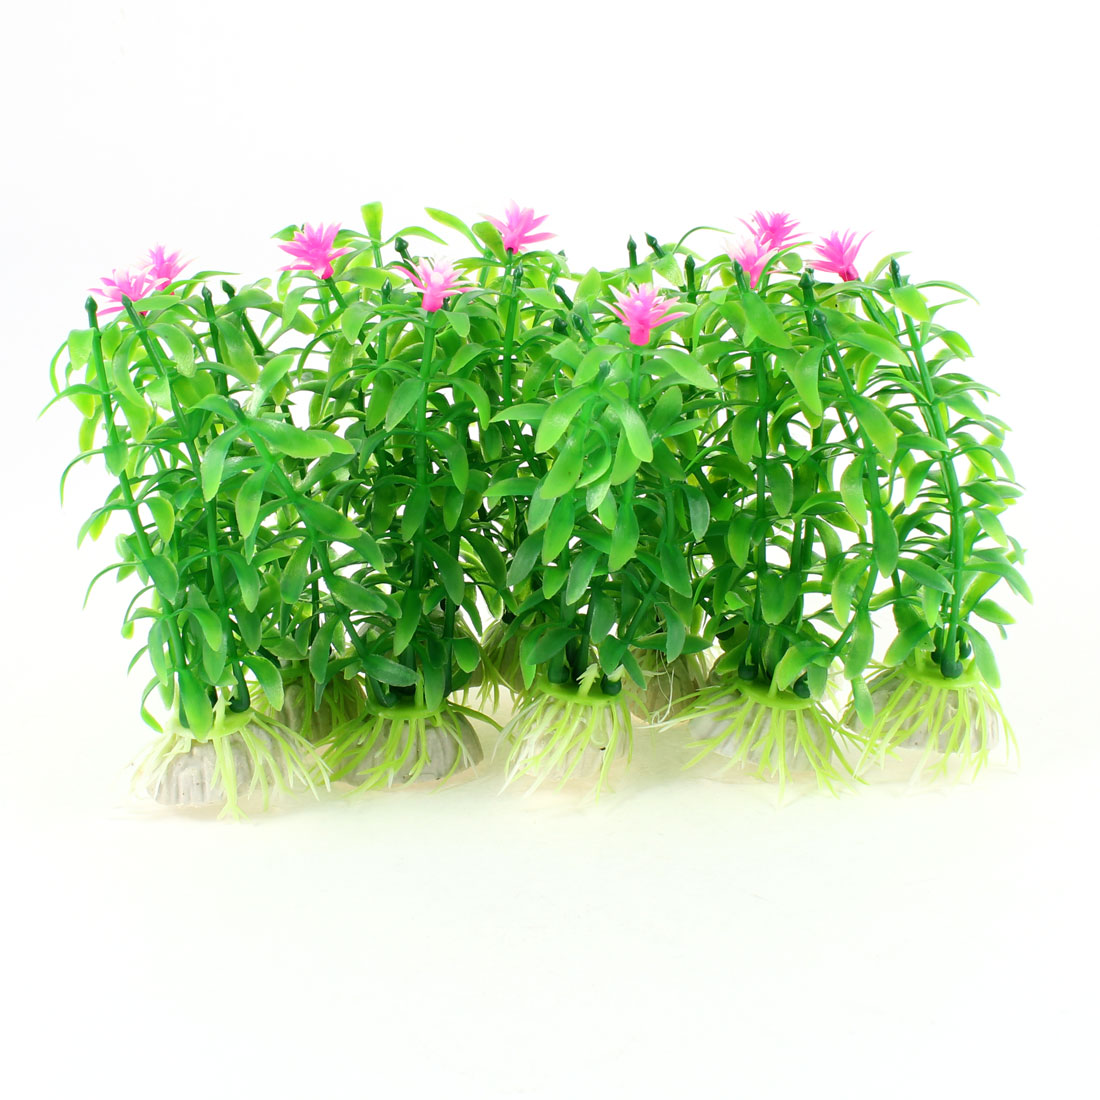 10 Pcs Pink Flower Accent Green Plastic Water Plants Decor for Fish Tank